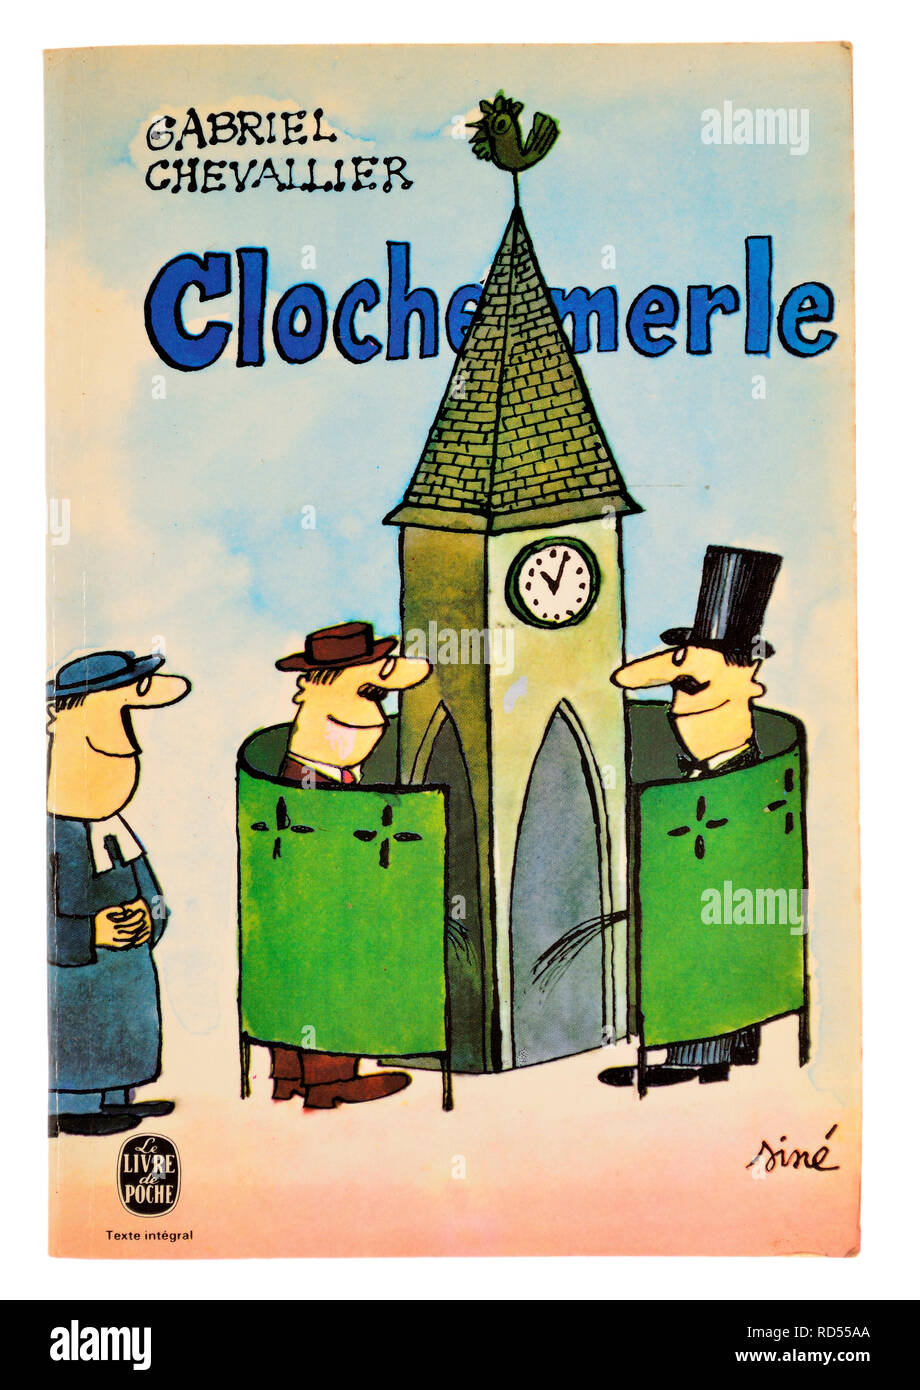 Clochemerle (Gabriel Chevalier: 1934) paperback book cover - Stock Image